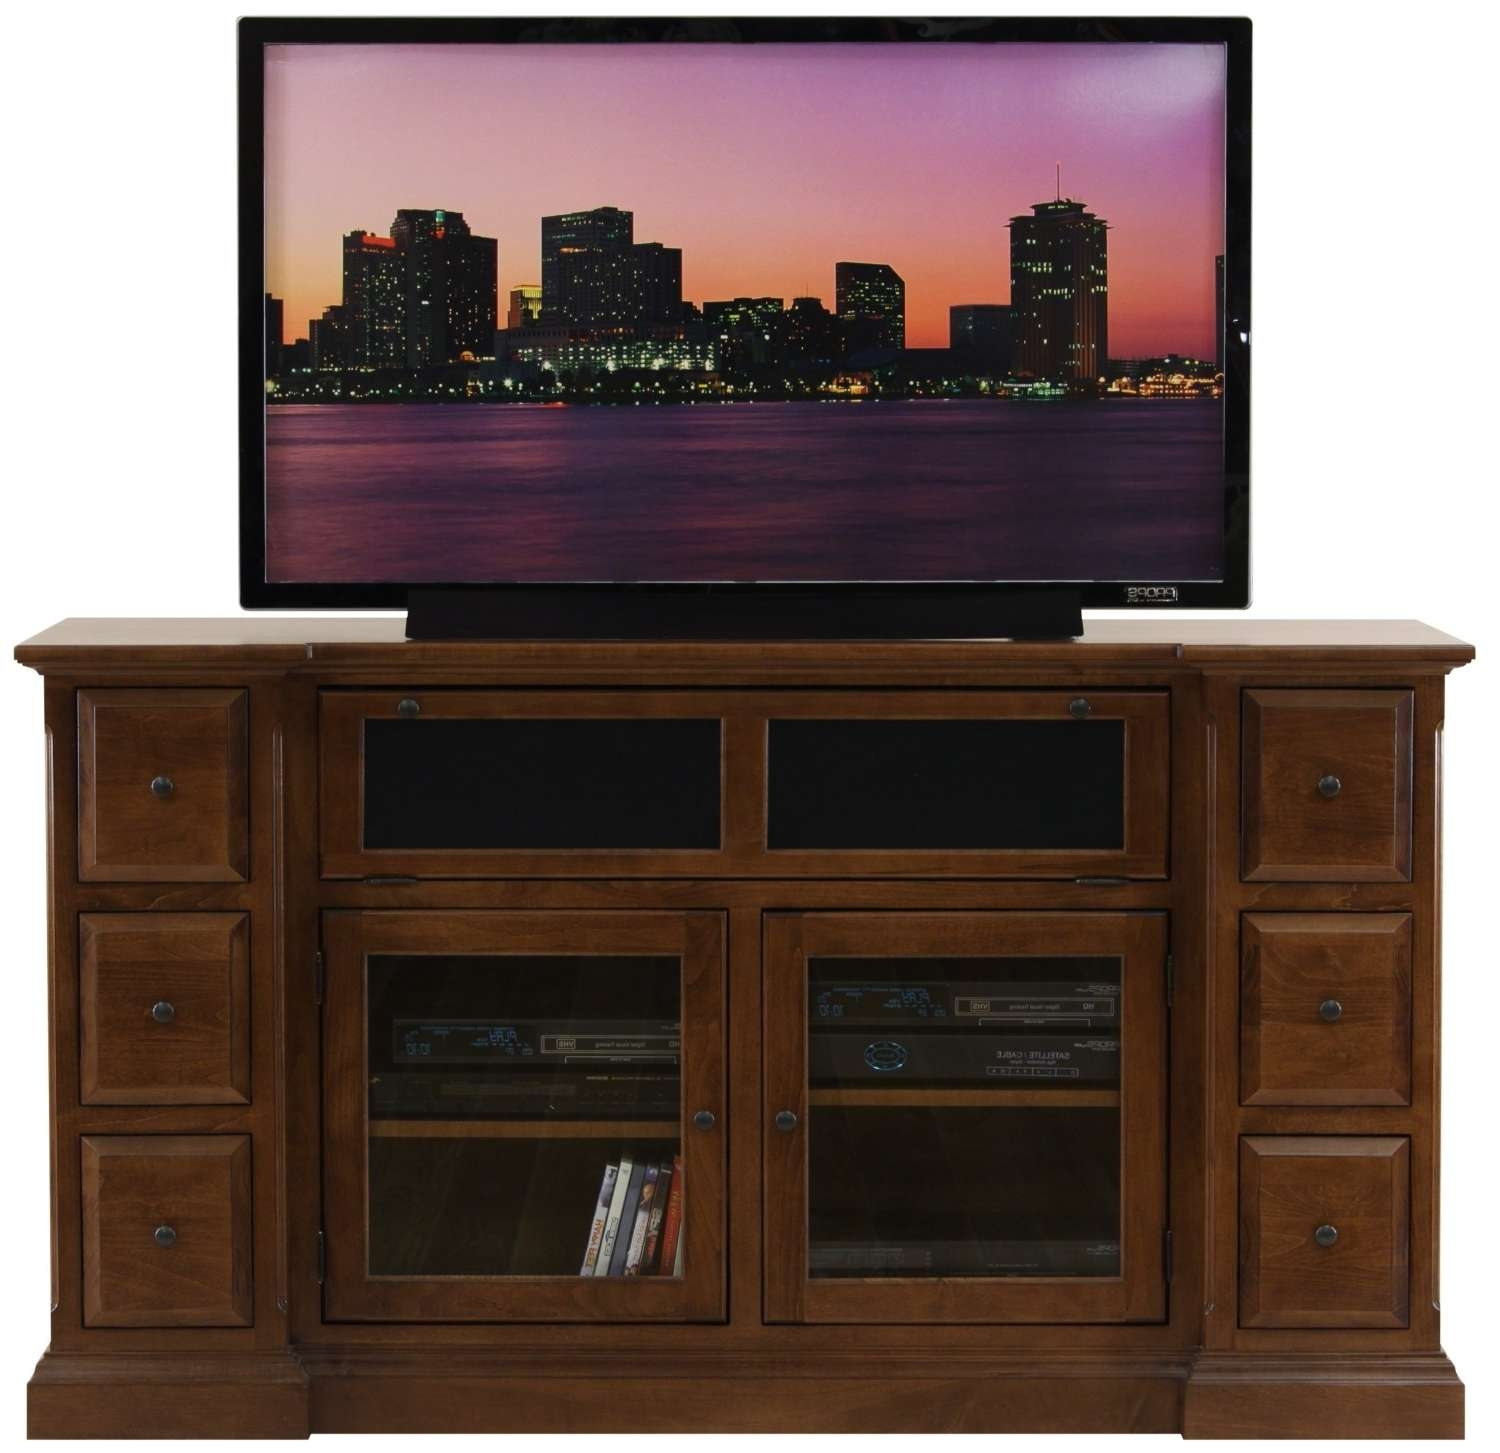 Marvelous Ideas Tv Stand Cabinet Wall Units Amazing Walmart Pertaining To Cheap Oak Tv Stands (View 6 of 15)